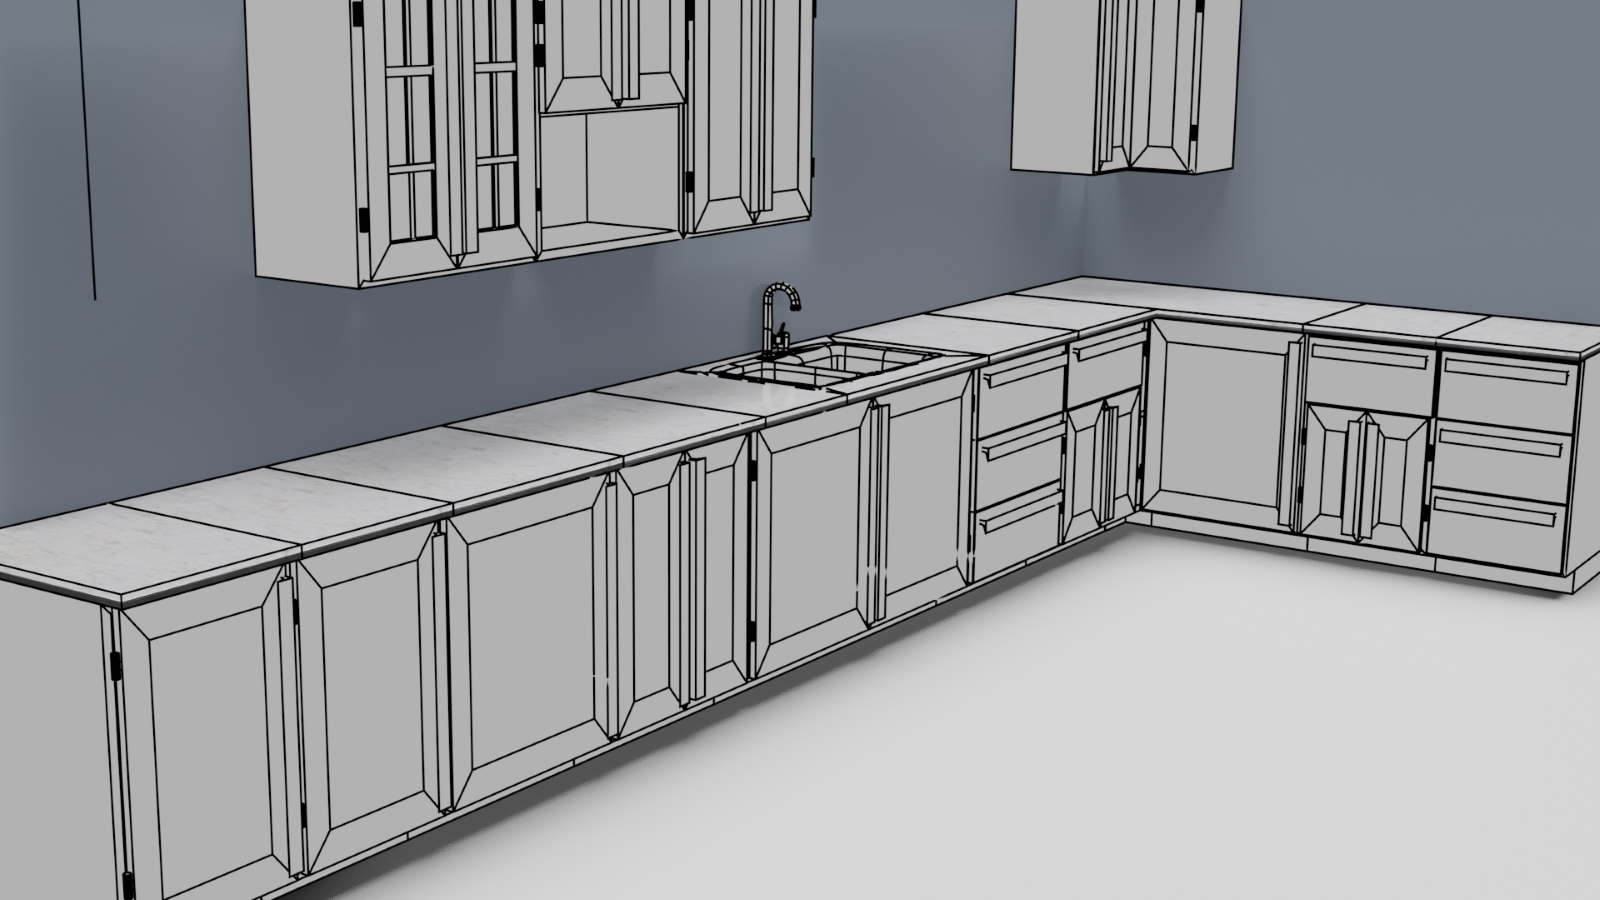 Low Poly Kitchen Grey - Extended License 3D Game Models : OBJ : FBX